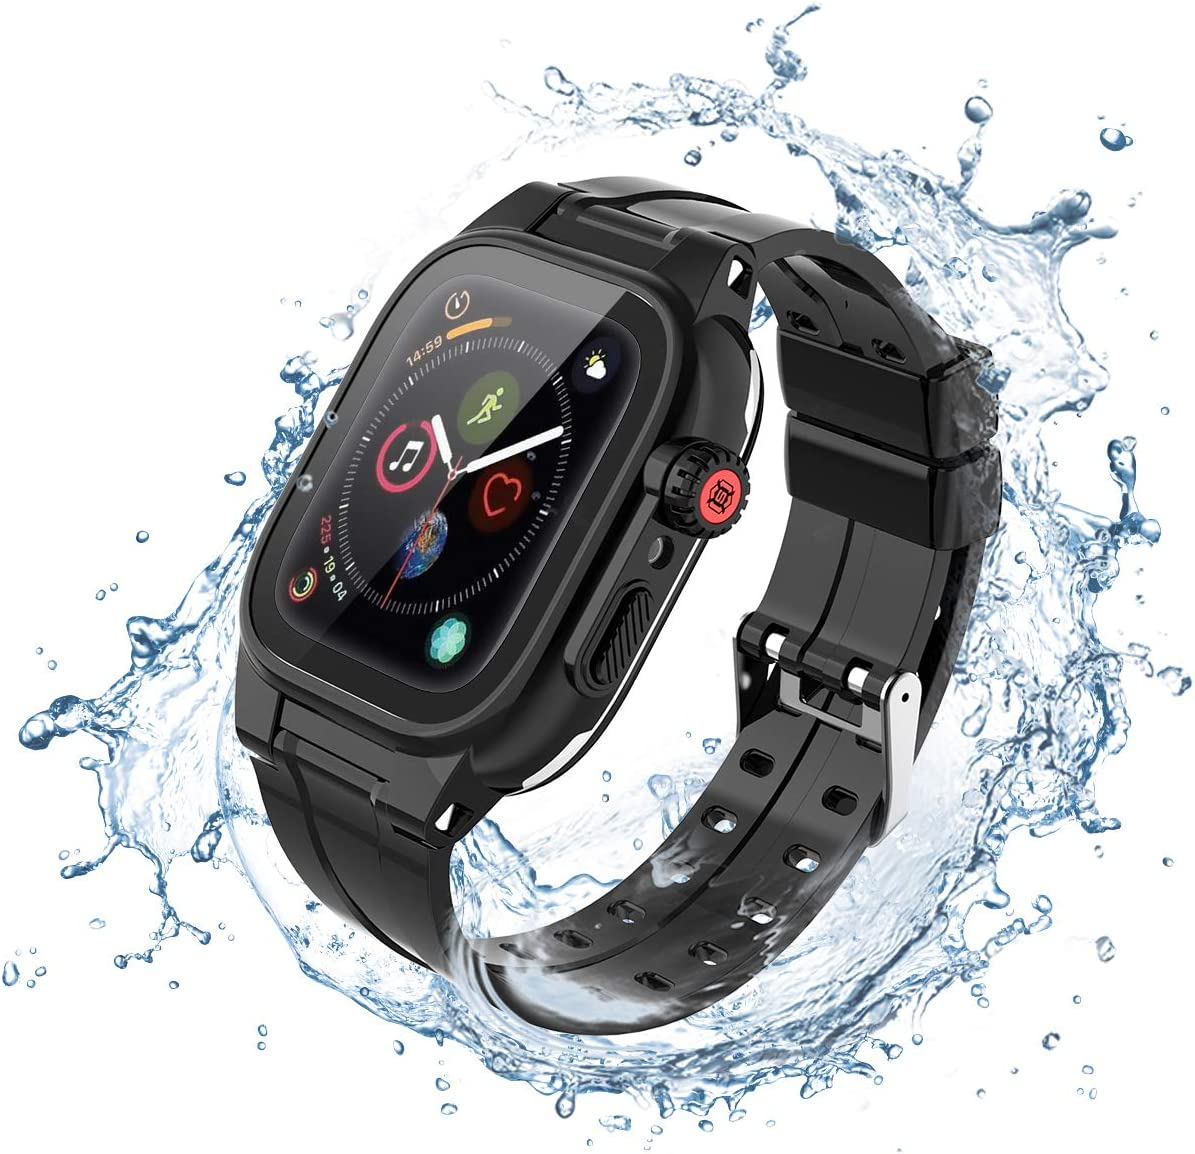 LONTECT Compatible for Apple Watch Series 5/4 44mm Waterproof Case with Band IP68 Shockproof Full Body Protective with Screen Protector Rugged iWatch Case + Soft Silicone Sport Band, Black